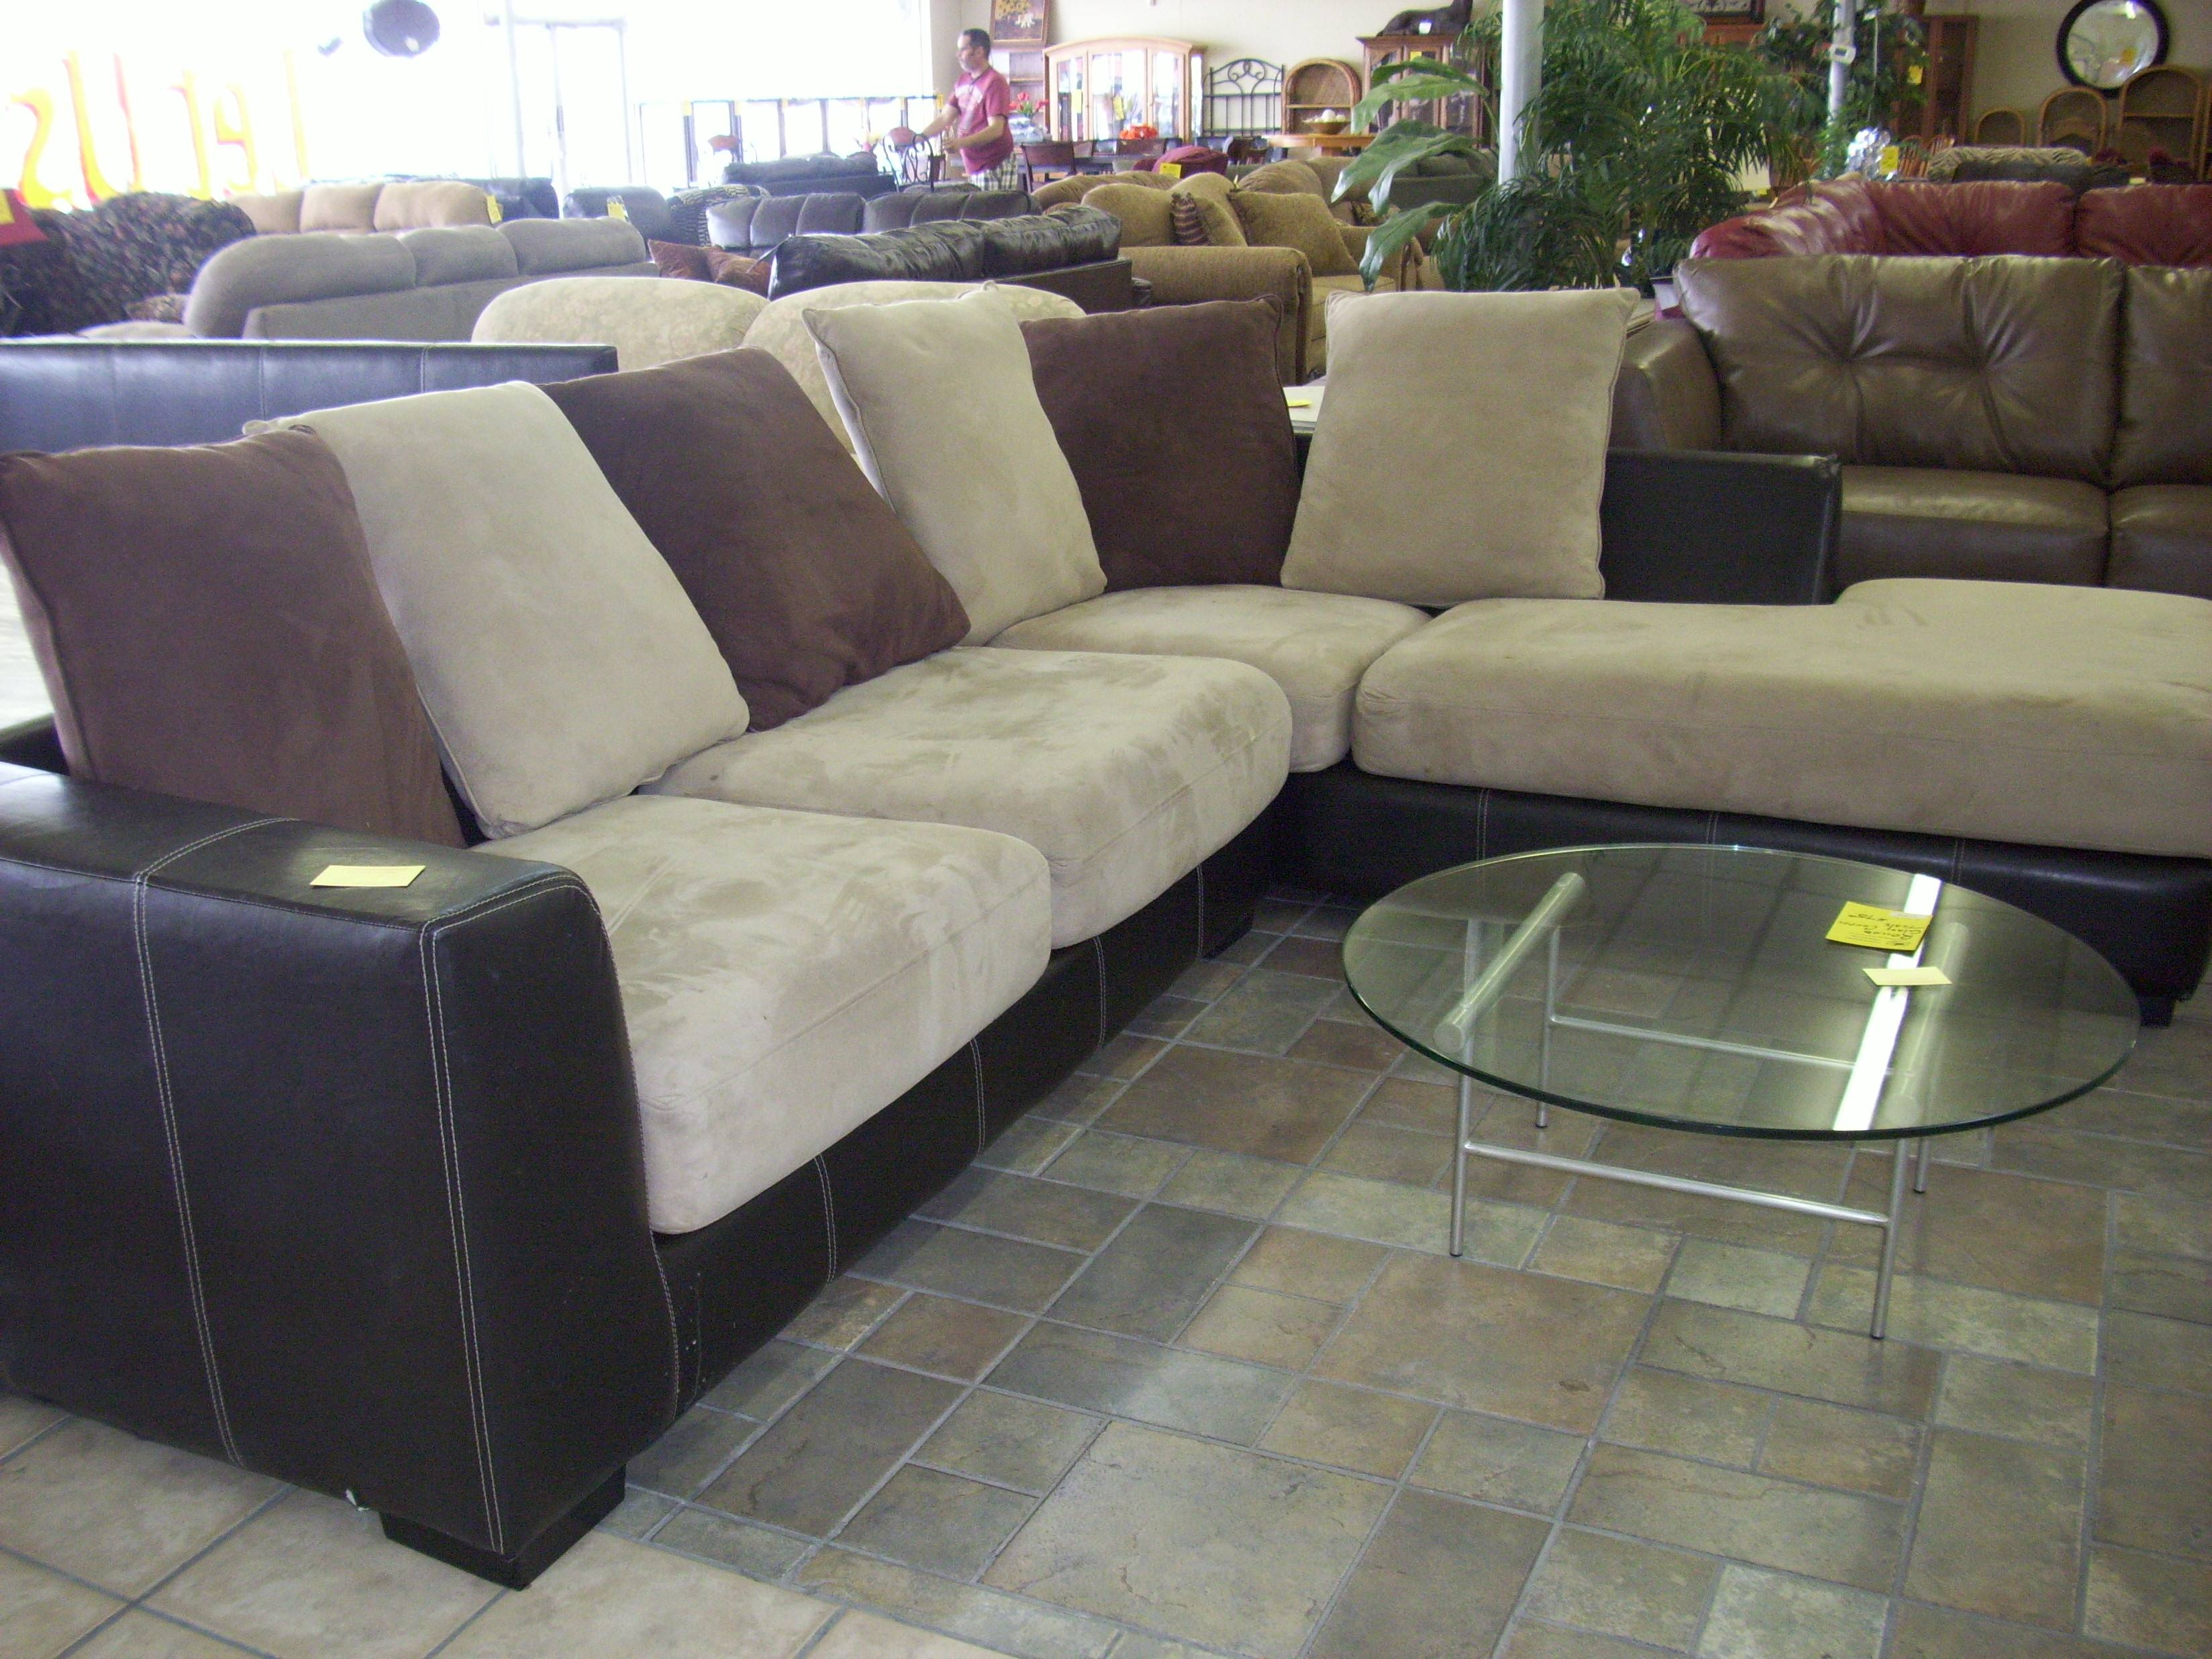 Interior: Impressive Microsuede Sectional Collections Sets For in Leather And Suede Sectional Sofa (Image 13 of 25)